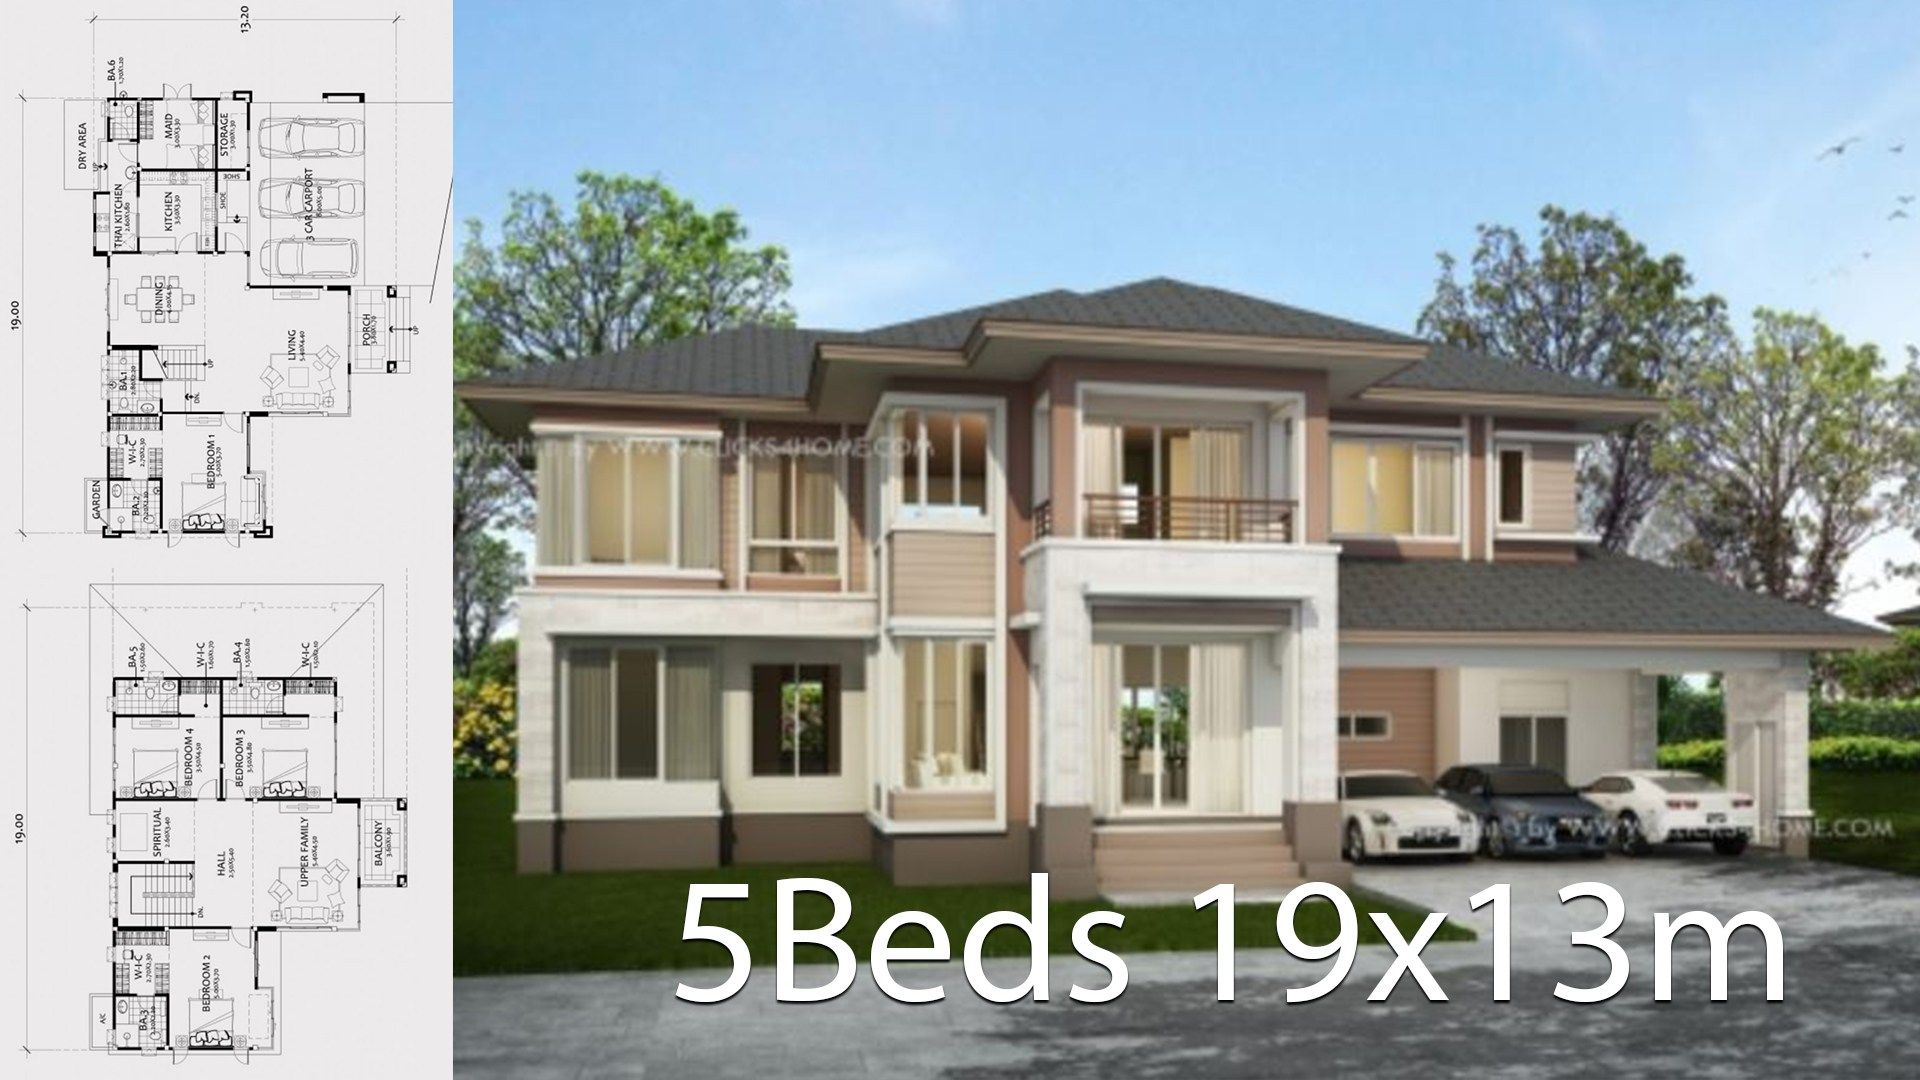 Home Design Plan 19x13m With 5 Bedrooms A Large Two Storey House With Luxurious Lines With Mode House Design Home Design Plan Architectural Design House Plans